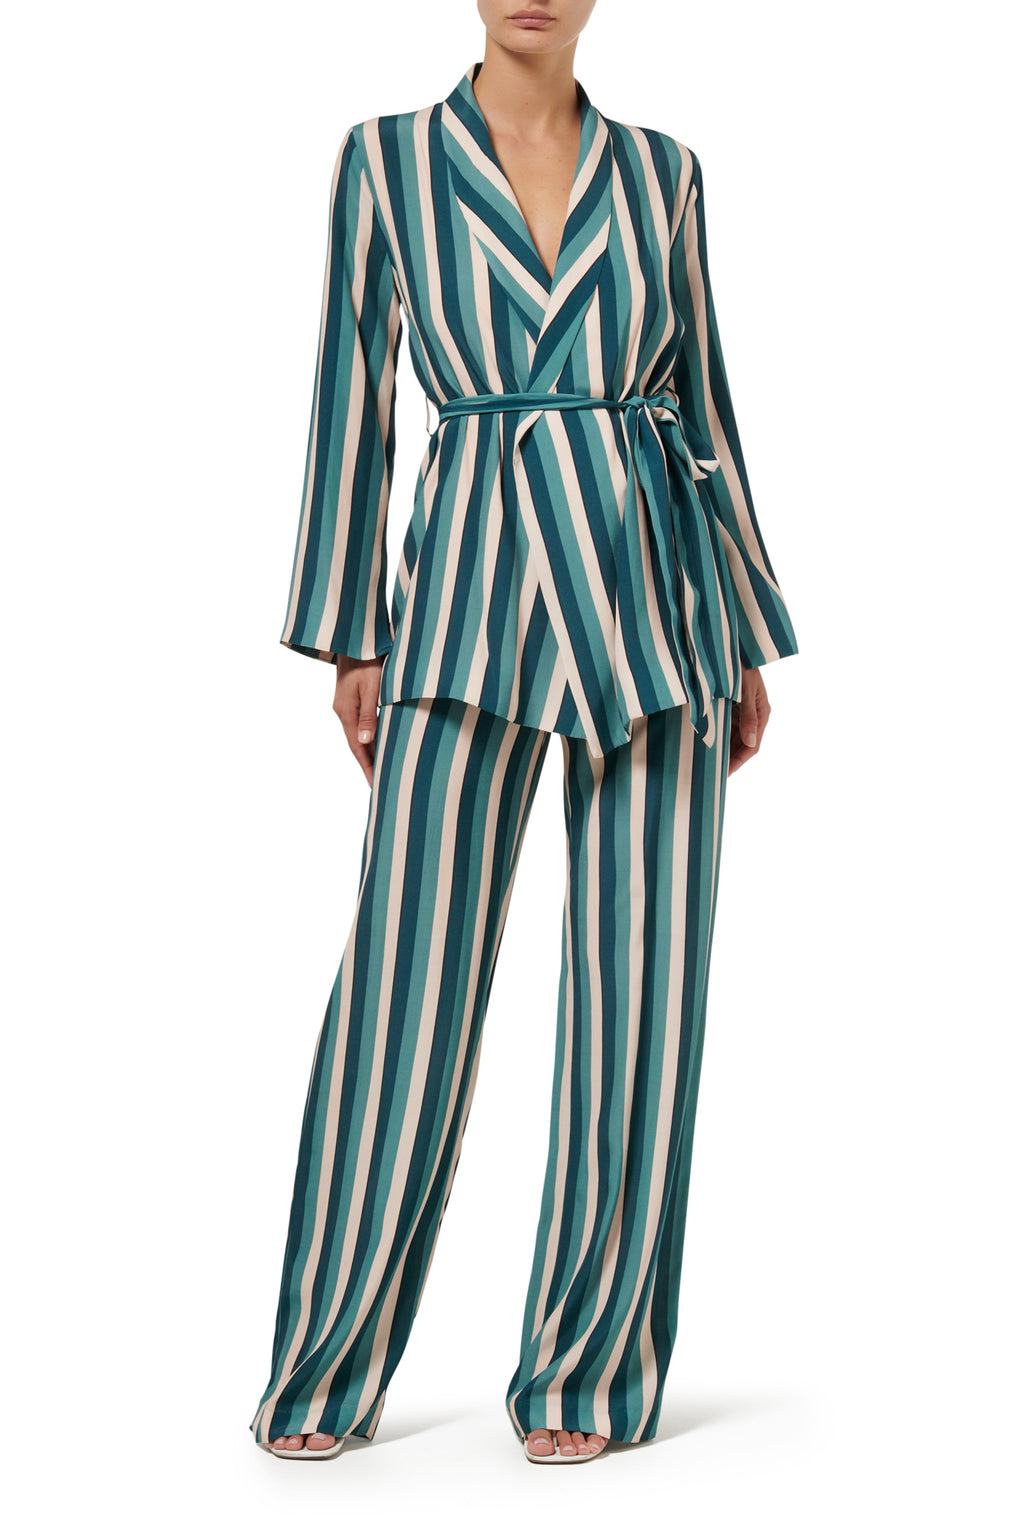 Dakota Lounge Jacket - Teal Stripe